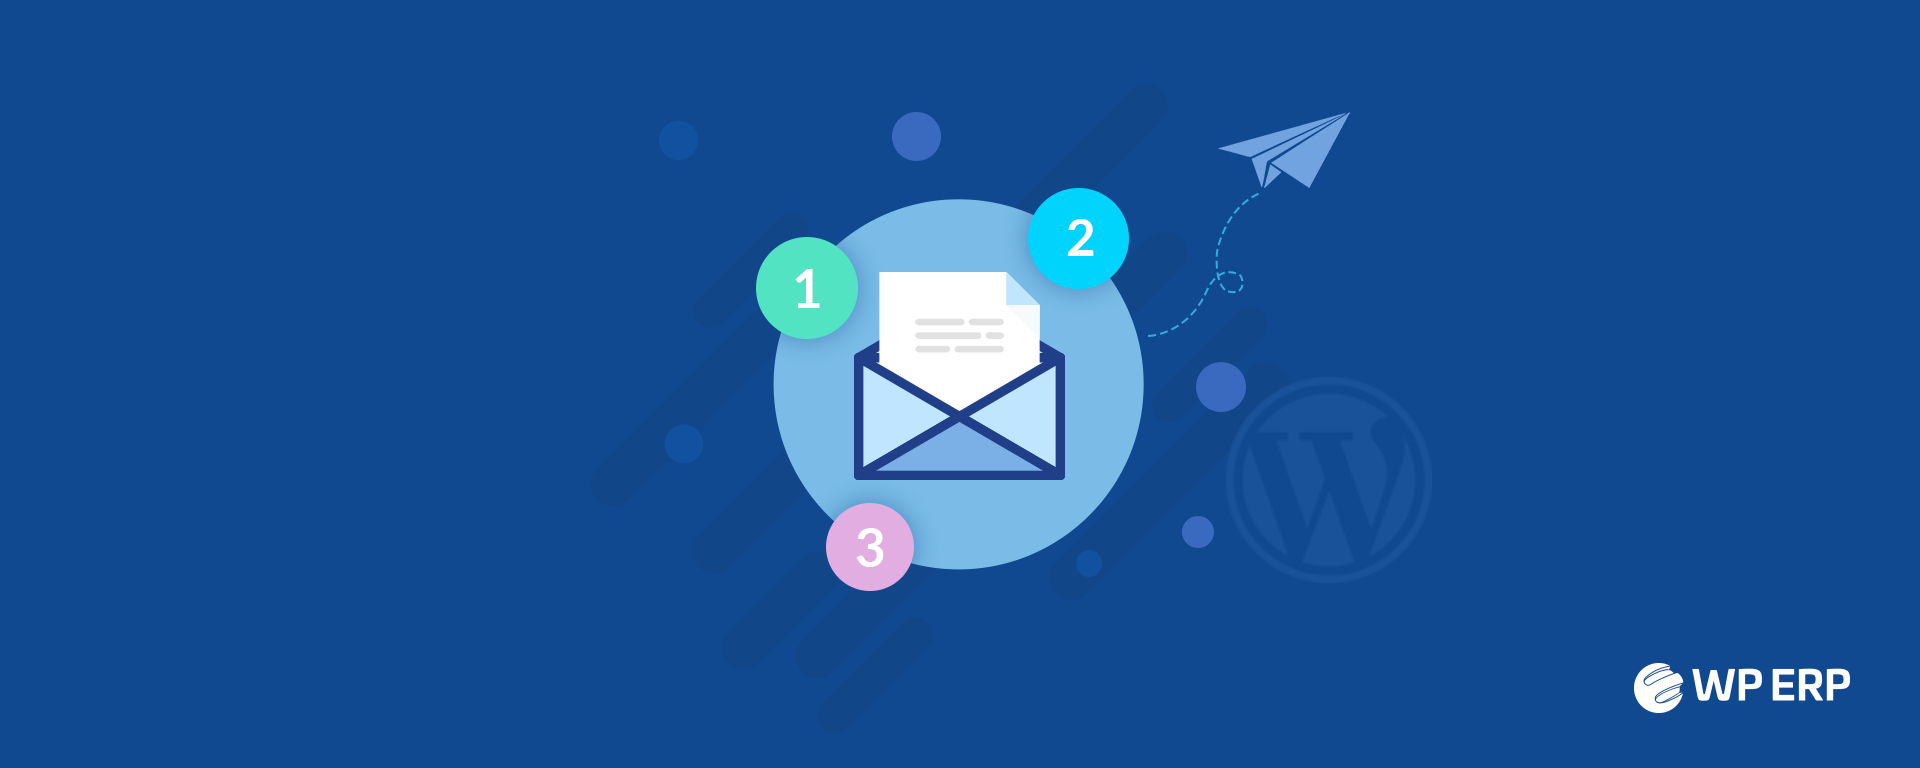 wordpress newsletters